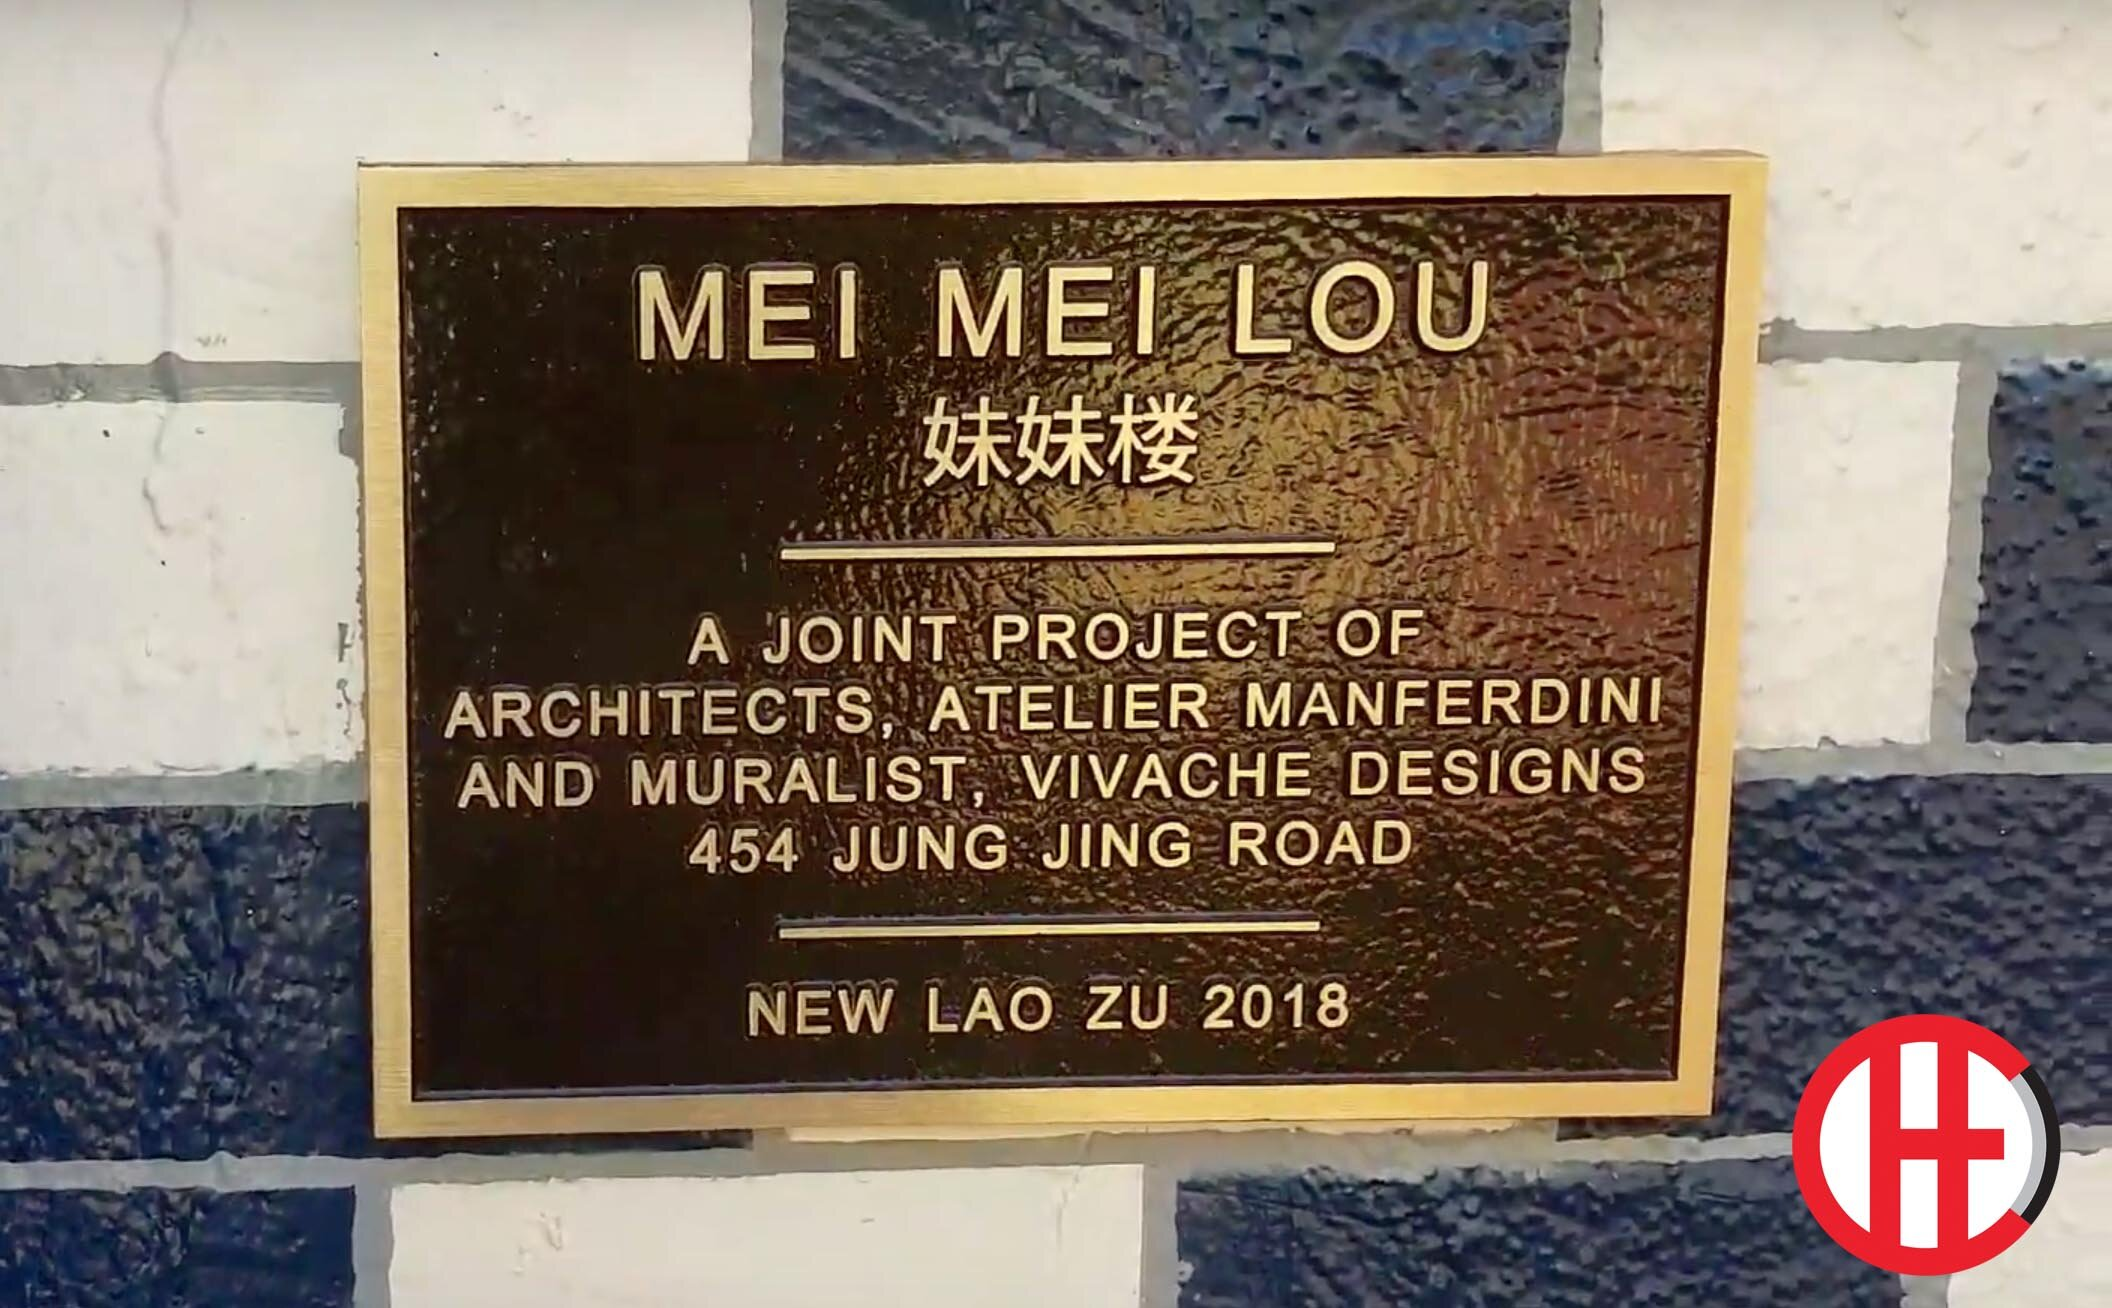 Mural painters Vivache Designs were awarded a bronze plaque with there name on it. You can see this fantastic Mei Mei Lou building mural now an iconic Public Art Landmark at 454 Jung Jing Rd, Los Angeles, CA 90012.